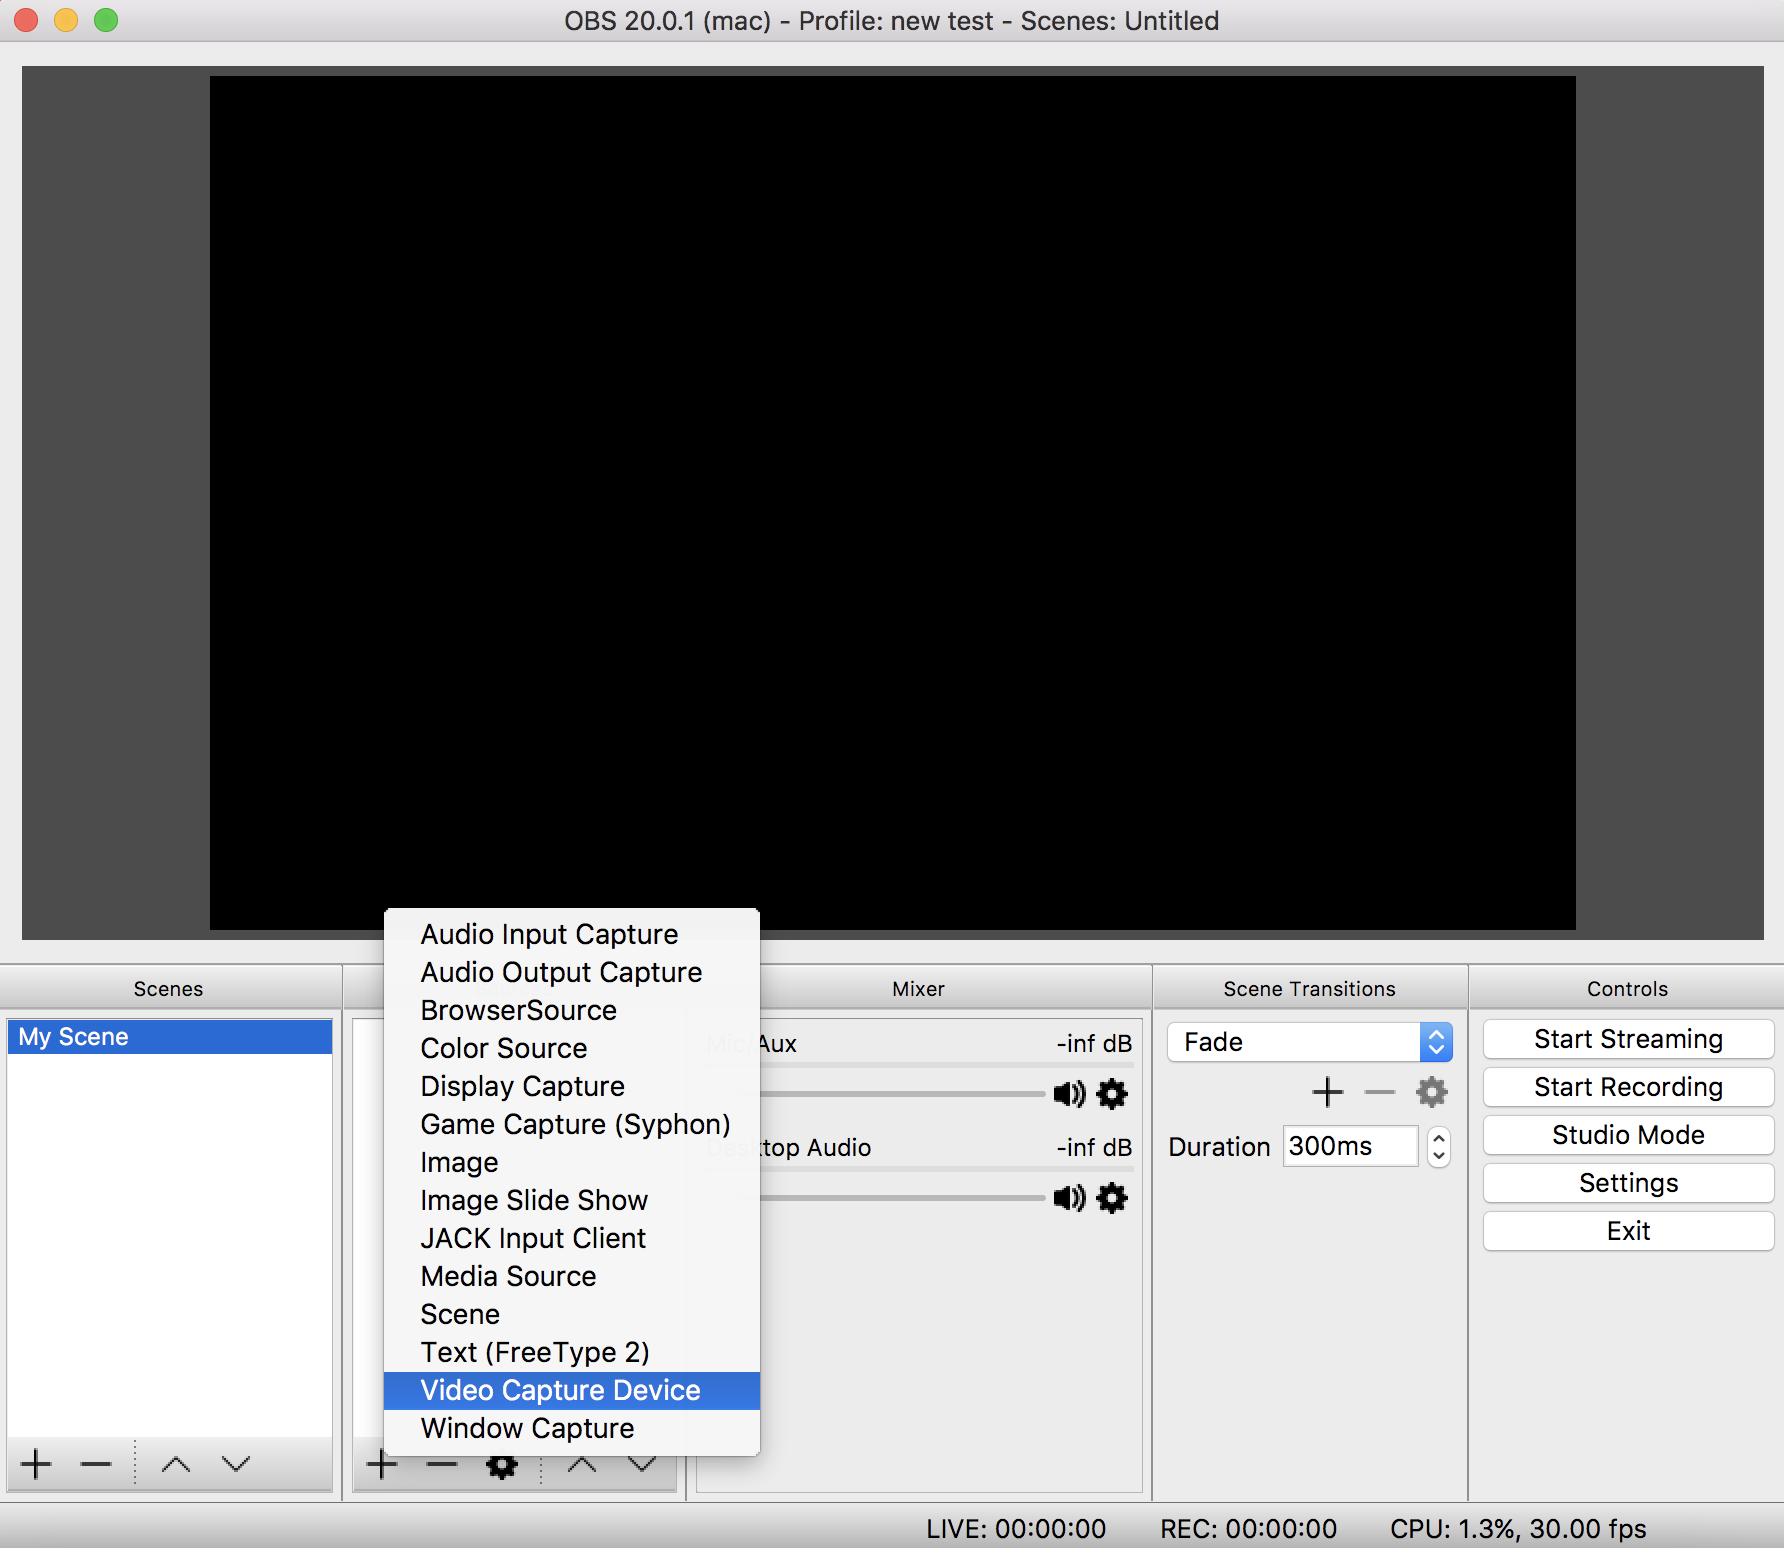 Video Capture Device OBS